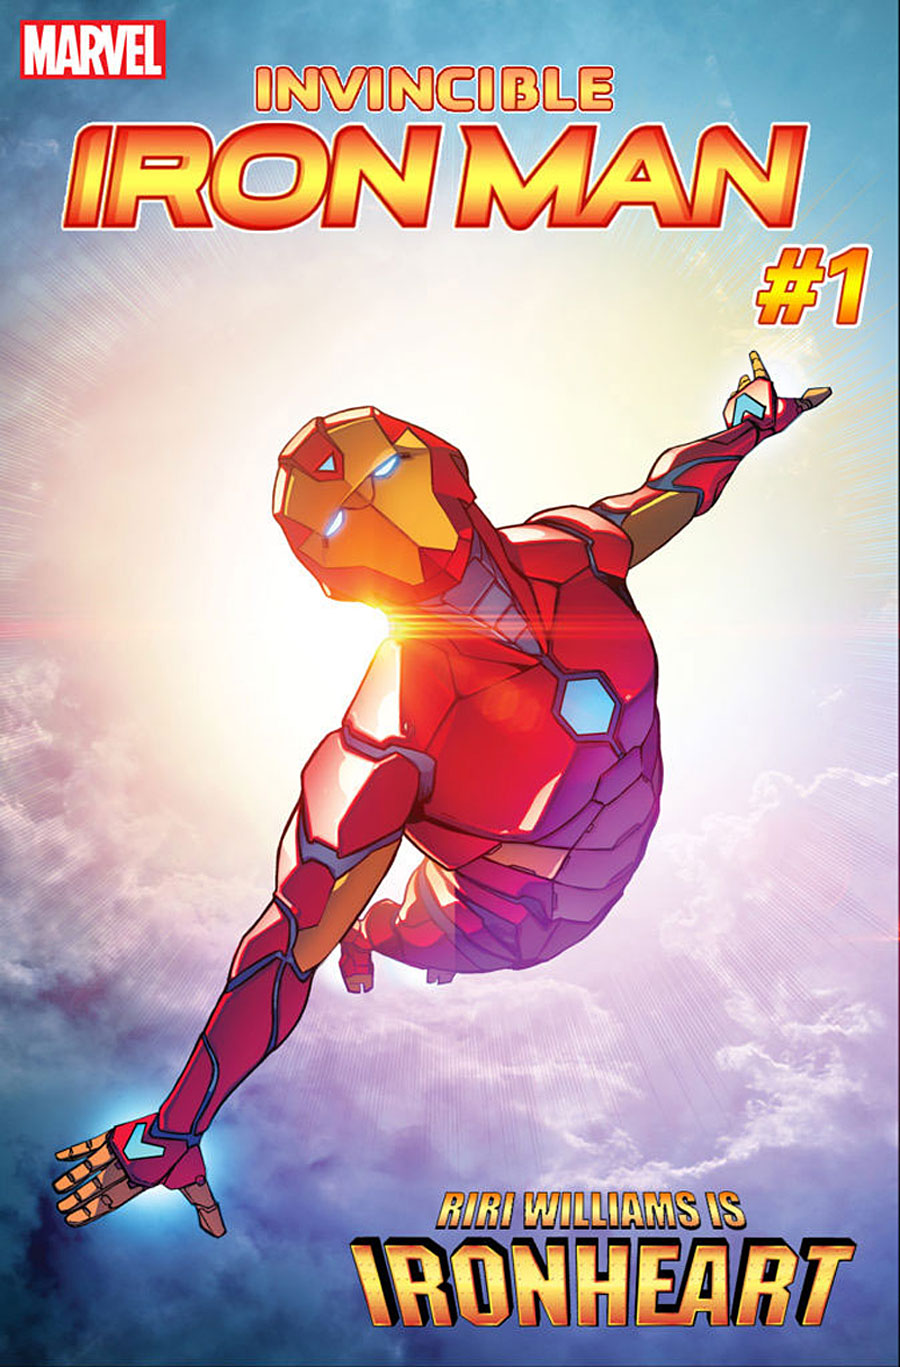 invincible-iron-man-1-riri-williams-ironheart